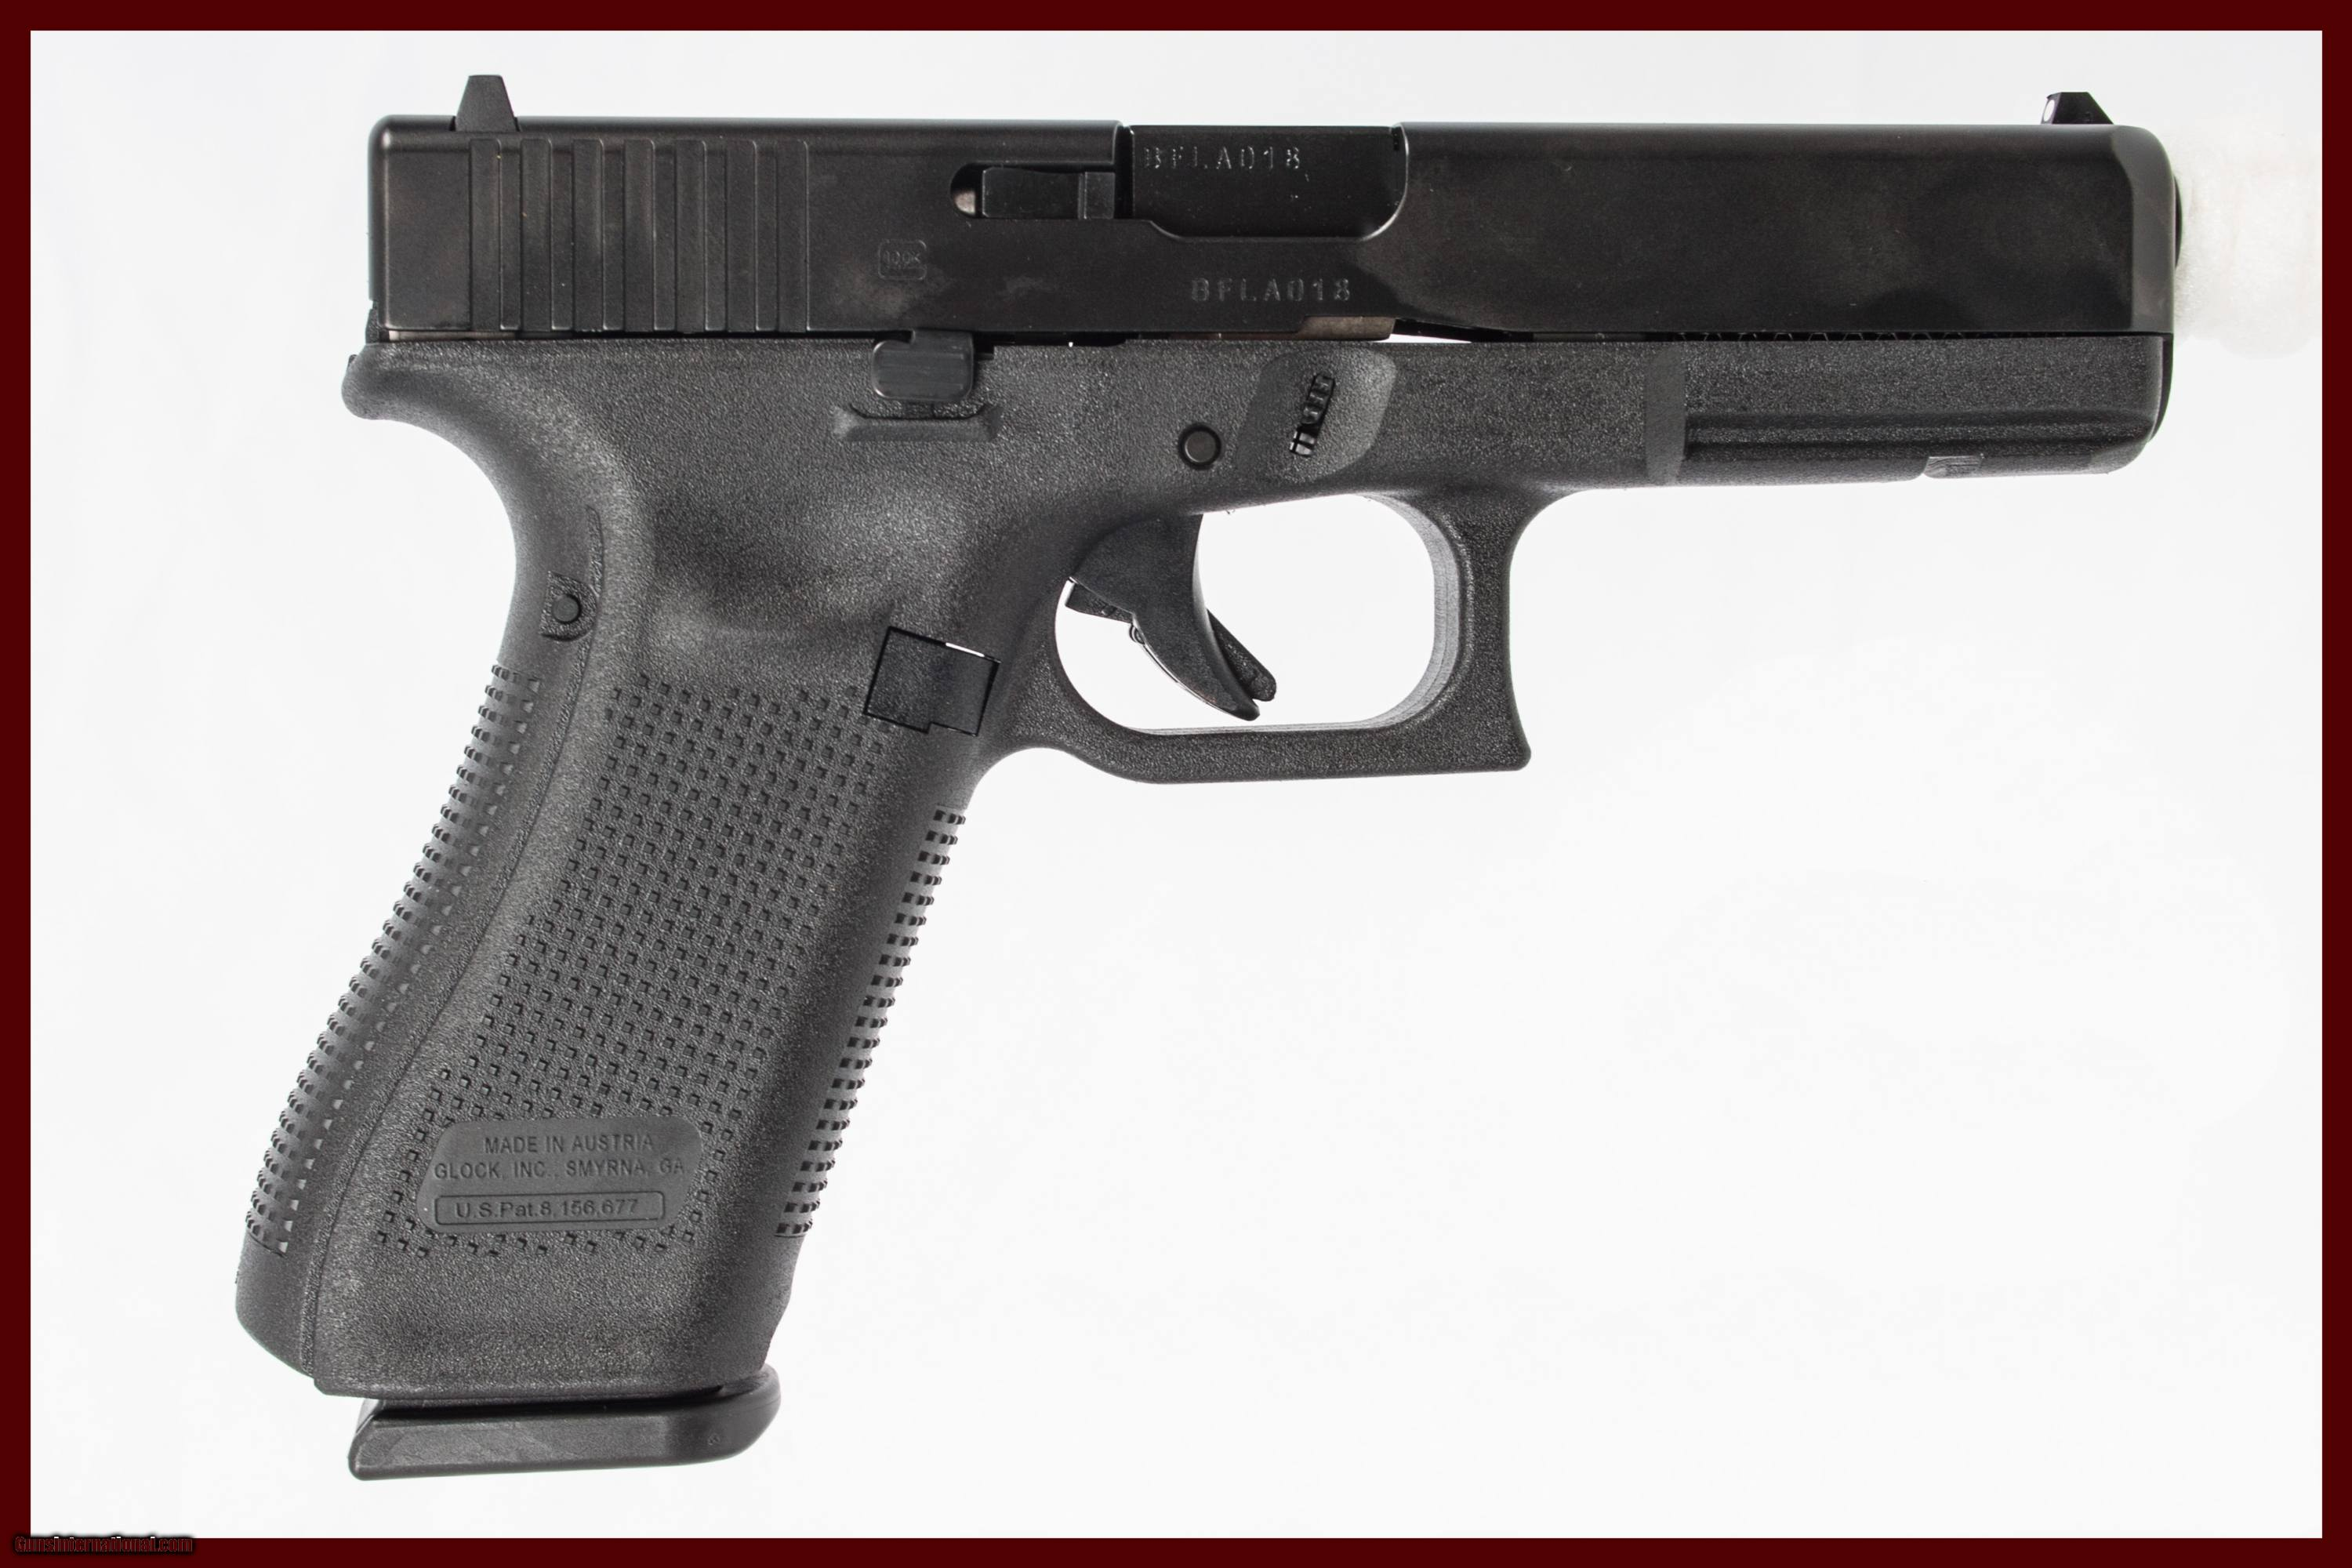 GLOCK 17 GEN 5 9 MM NEW GUN INV 200315 for sale